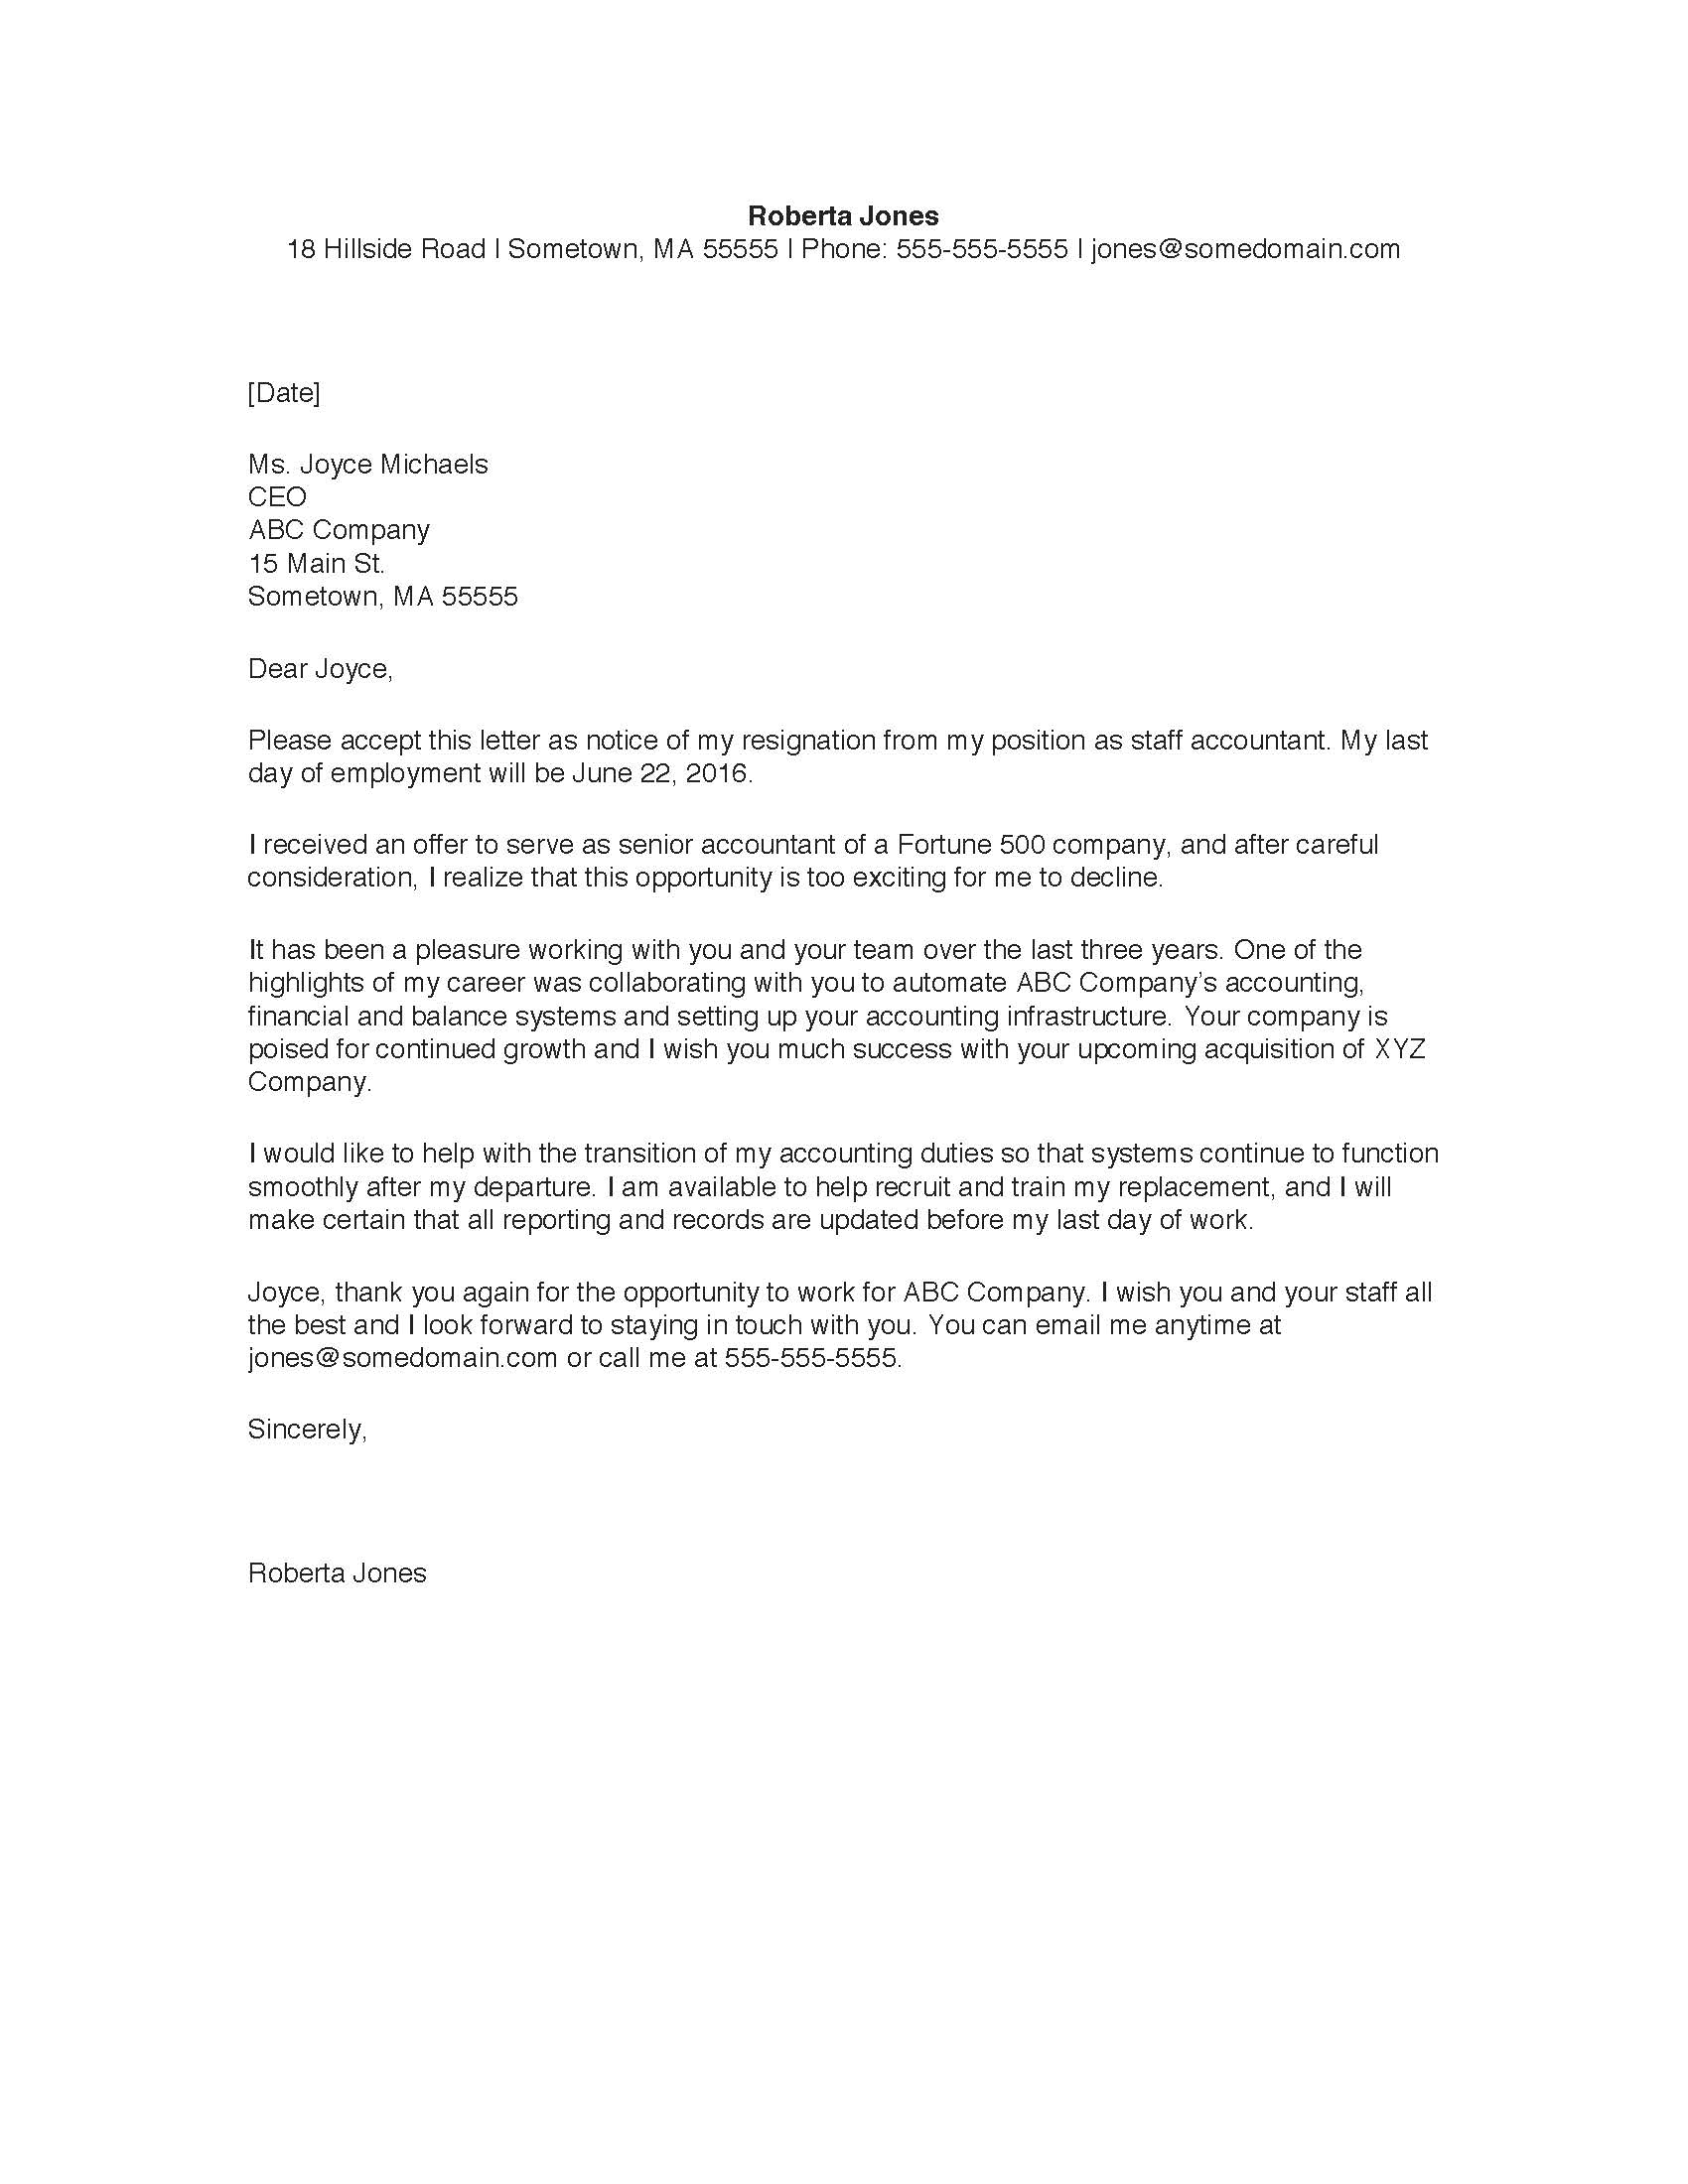 example resignation letter  Sample Resignation Letter | Monster.com